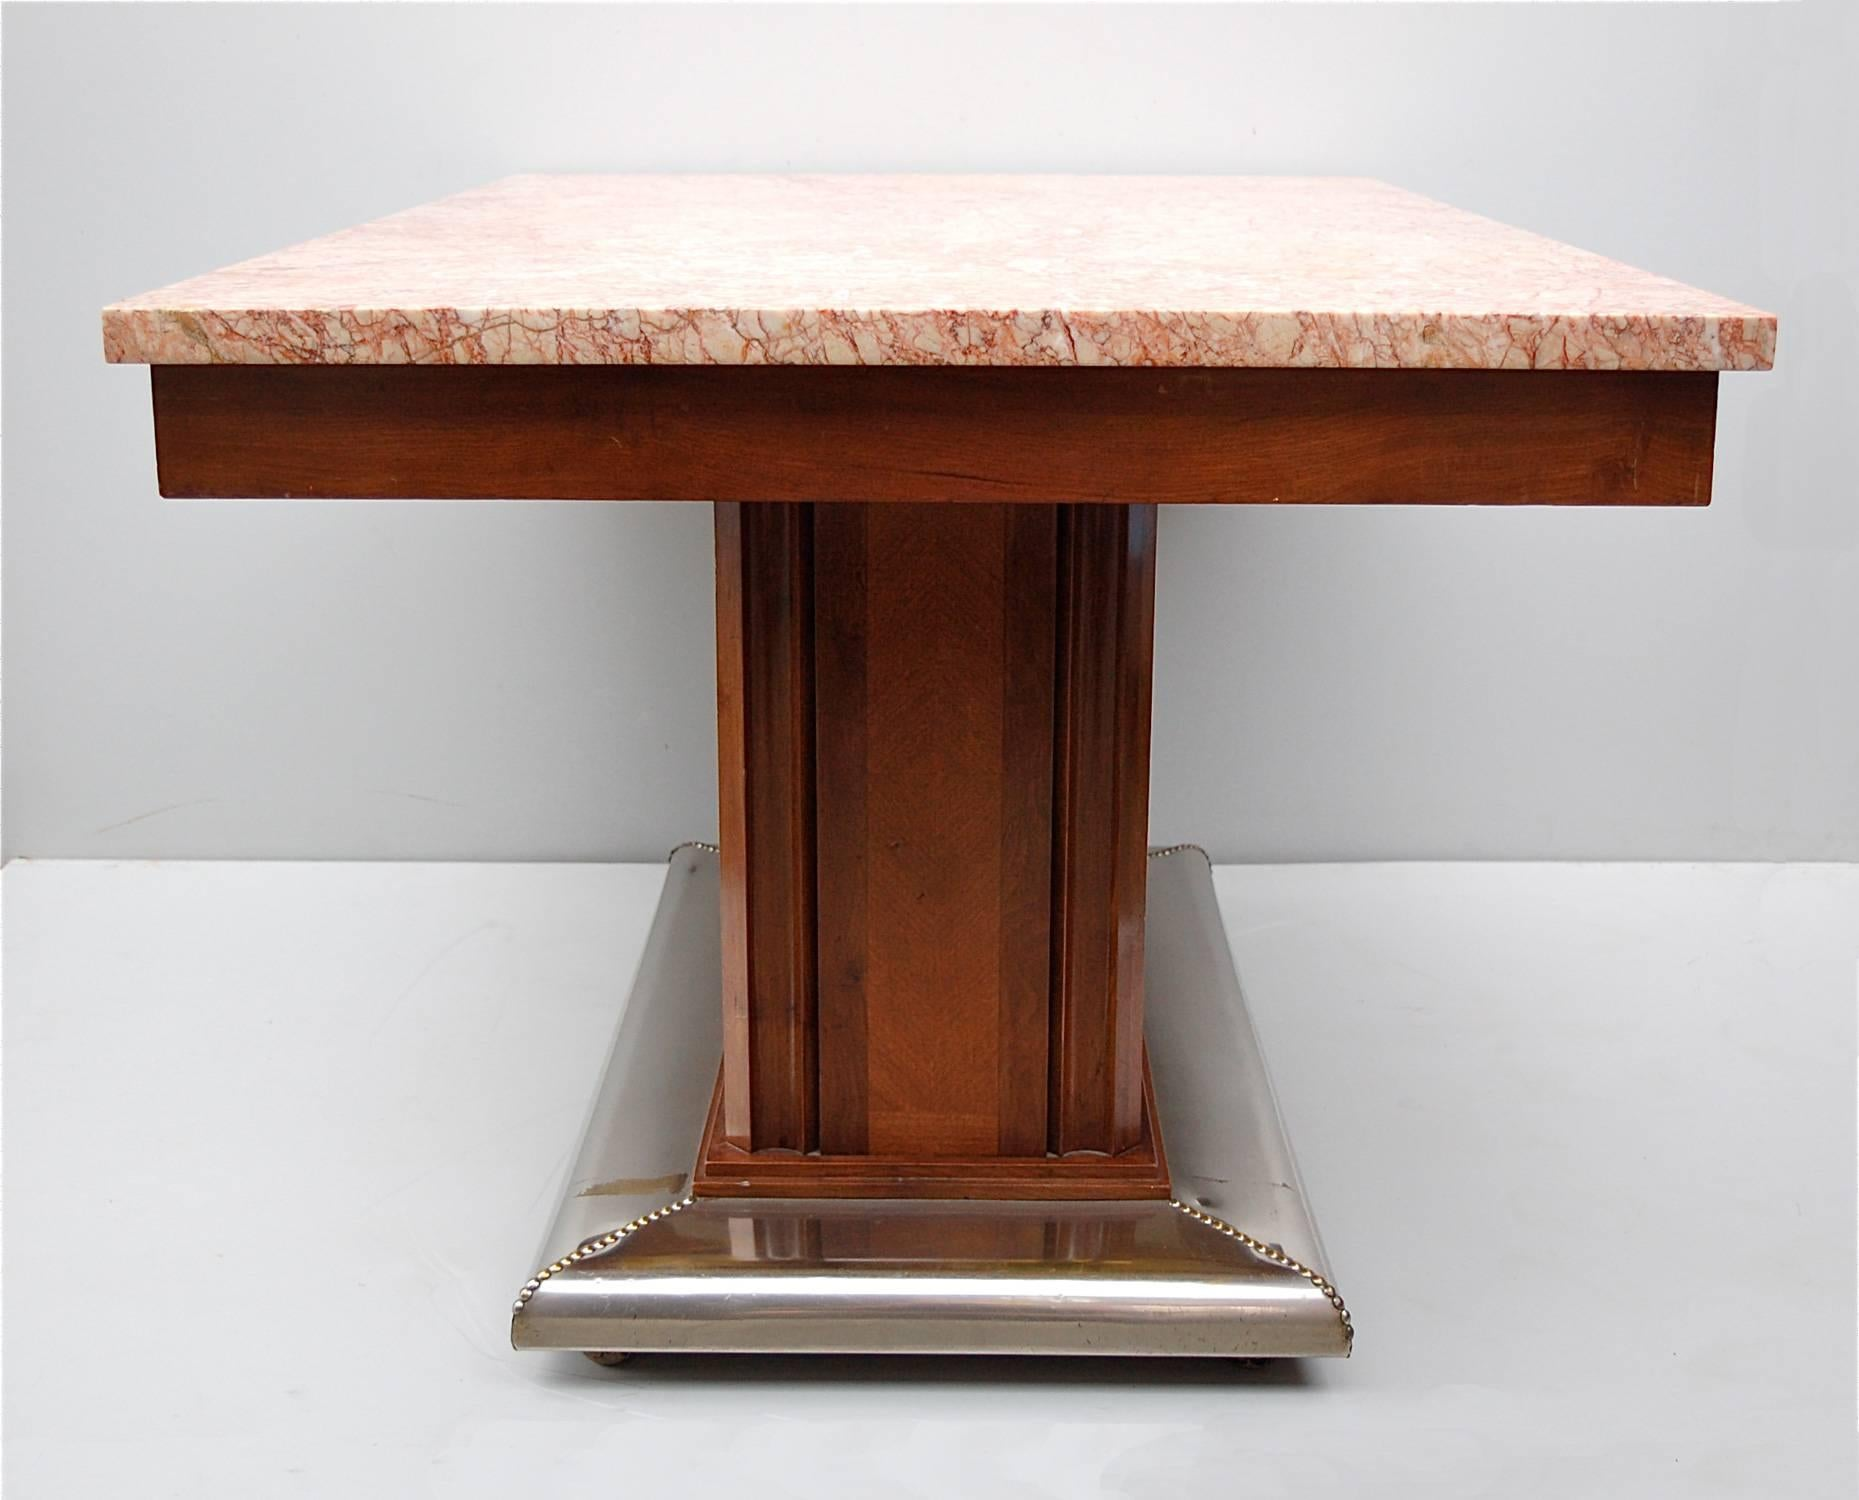 1920s Art Deco Dining Table With Pink Marble Top And Metal Pedestal